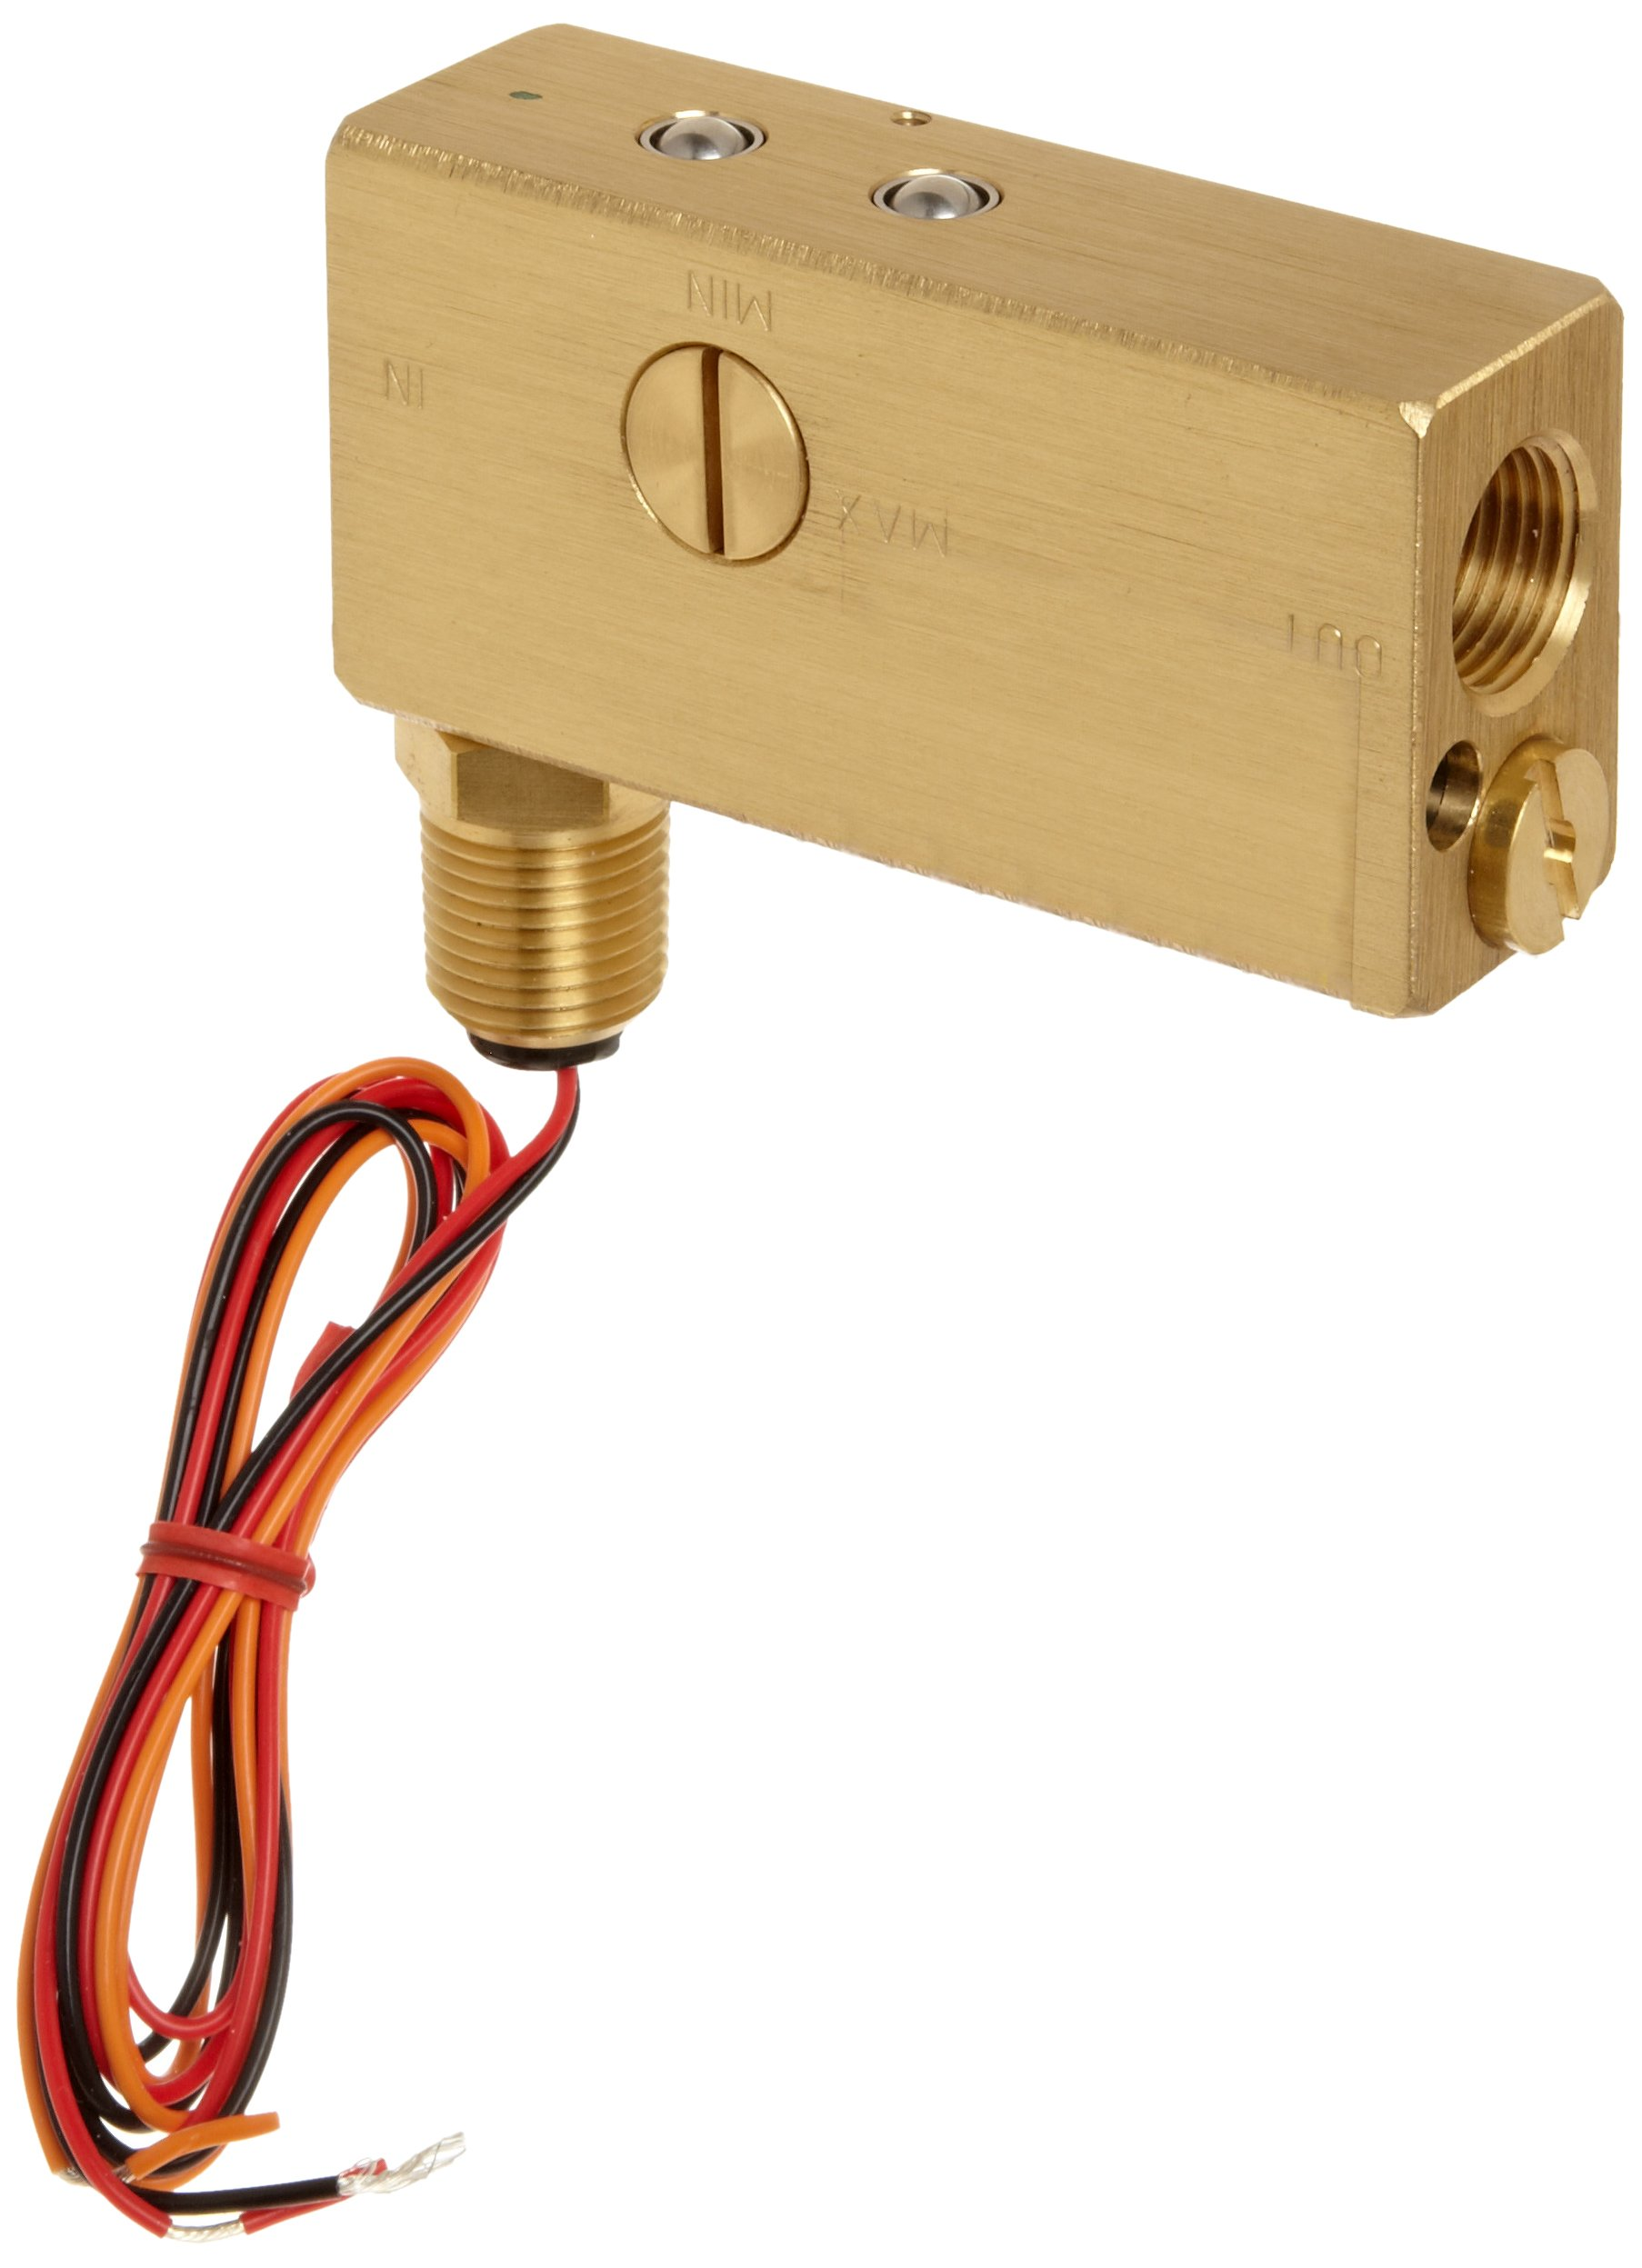 Gems Sensors FS-10798 Series Brass Flow Switch for Use with Gases, Inline, Piston Type, with 1/2'' Conduit Connector, 0.50-20 gpm Flow Setting Adjustment Range, 1/2'' NPT Female